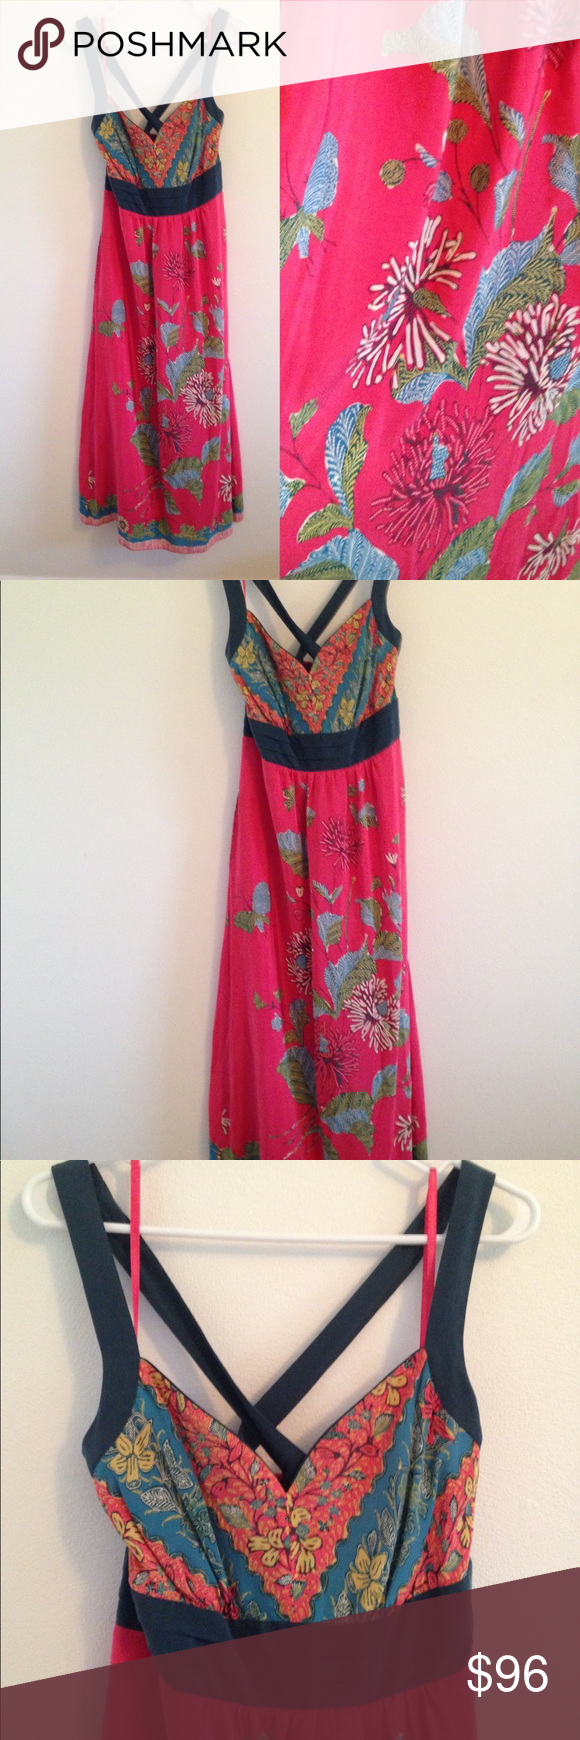 """Edme and Esyllte Silk Equinox Calling maxi dress Excellent used condition. Measures approximately 36"""" bust, 34"""" waist, and 54"""" long. Anthropologie Dresses Maxi"""